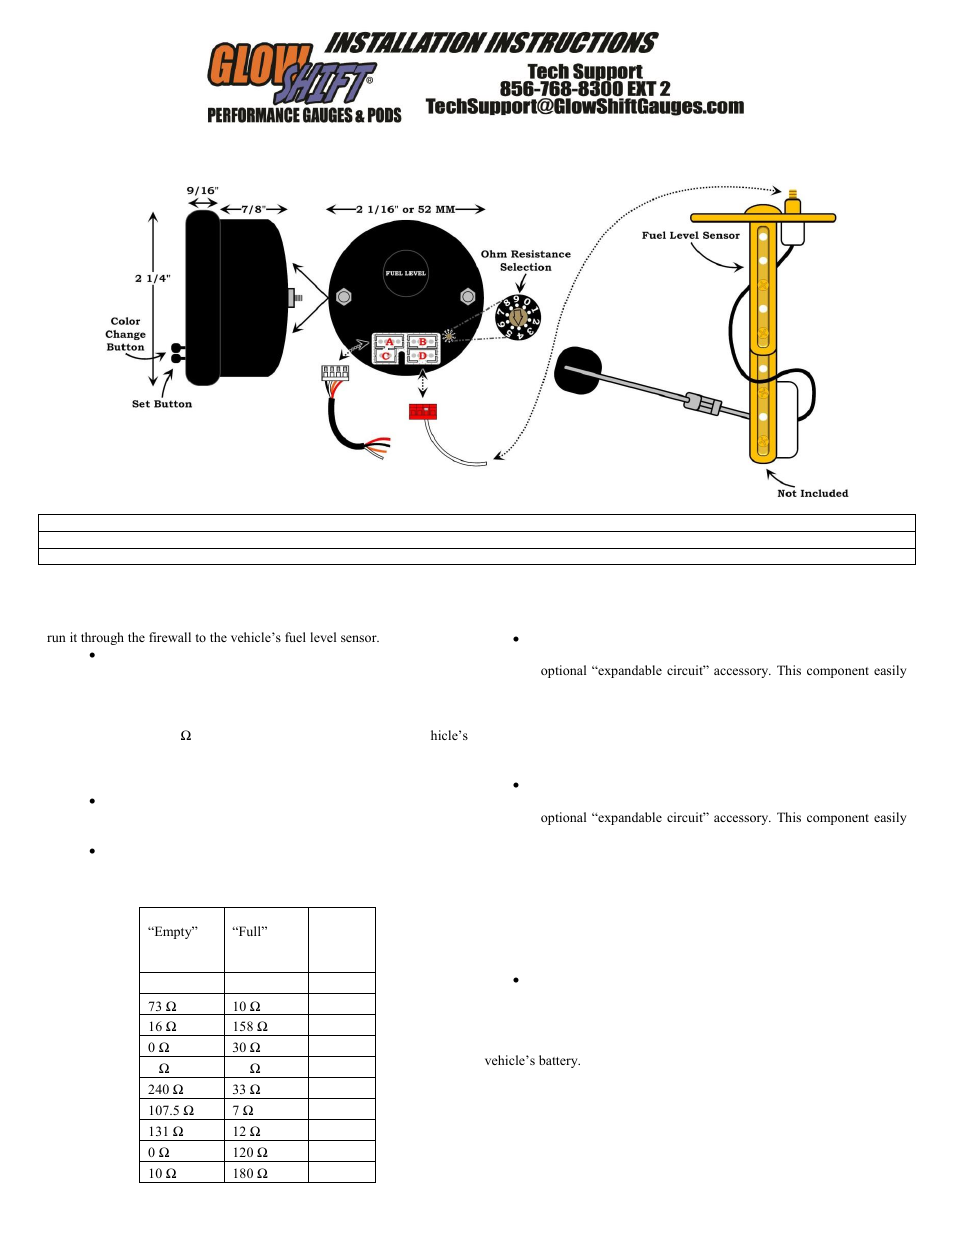 Fuel Level Sensor Wiring Just Another Diagram Blog Gm Glowshift Gauge User Manual 3 Pages Rh Manualsdir Com 2006 Wrangler Sender